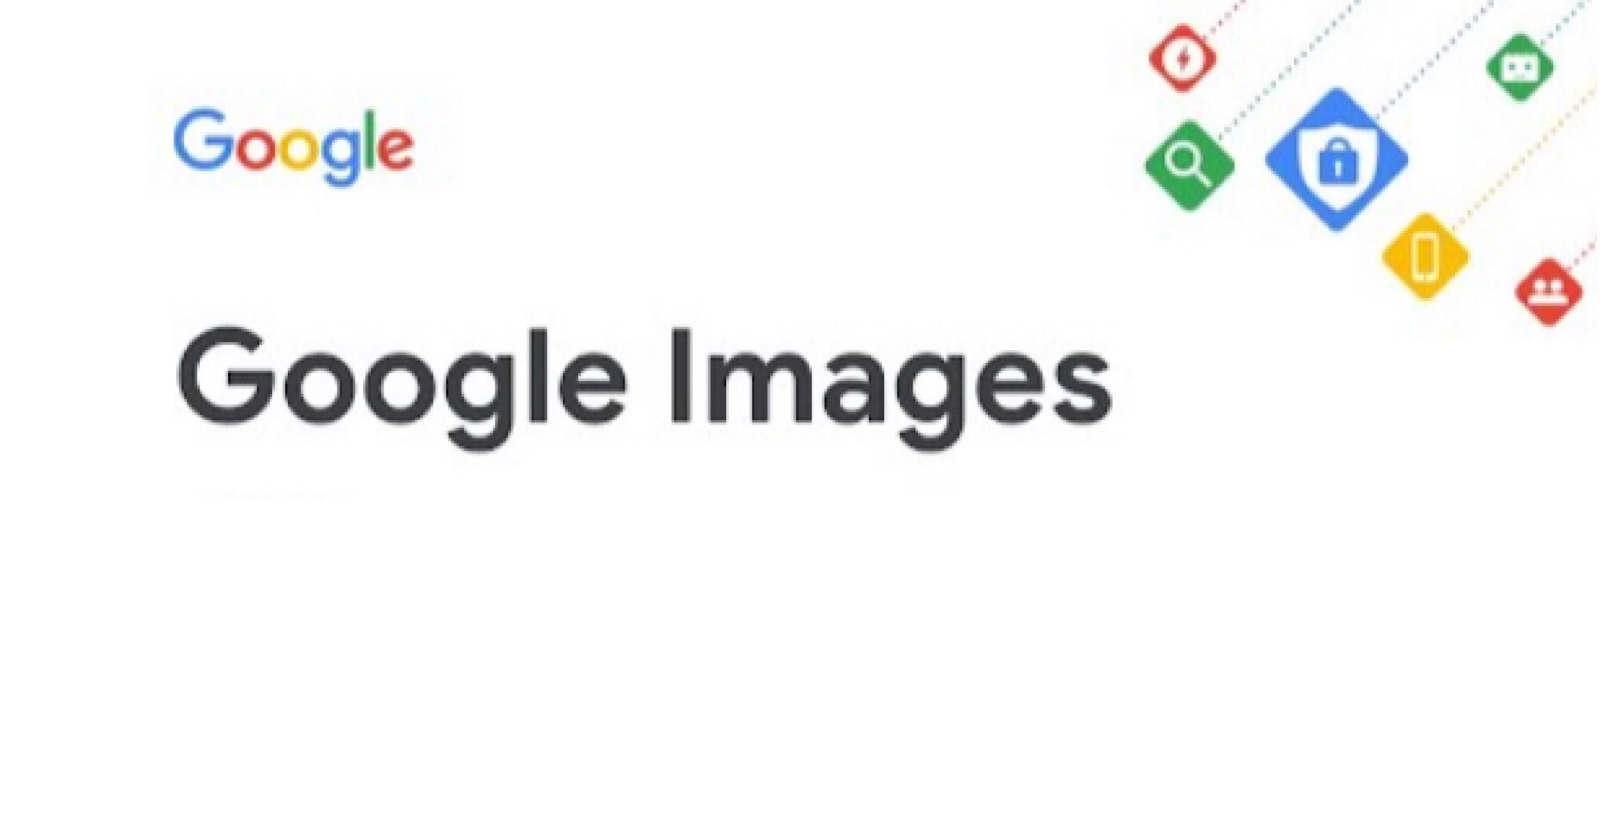 Image Search Best Practices & Changes Over the Years